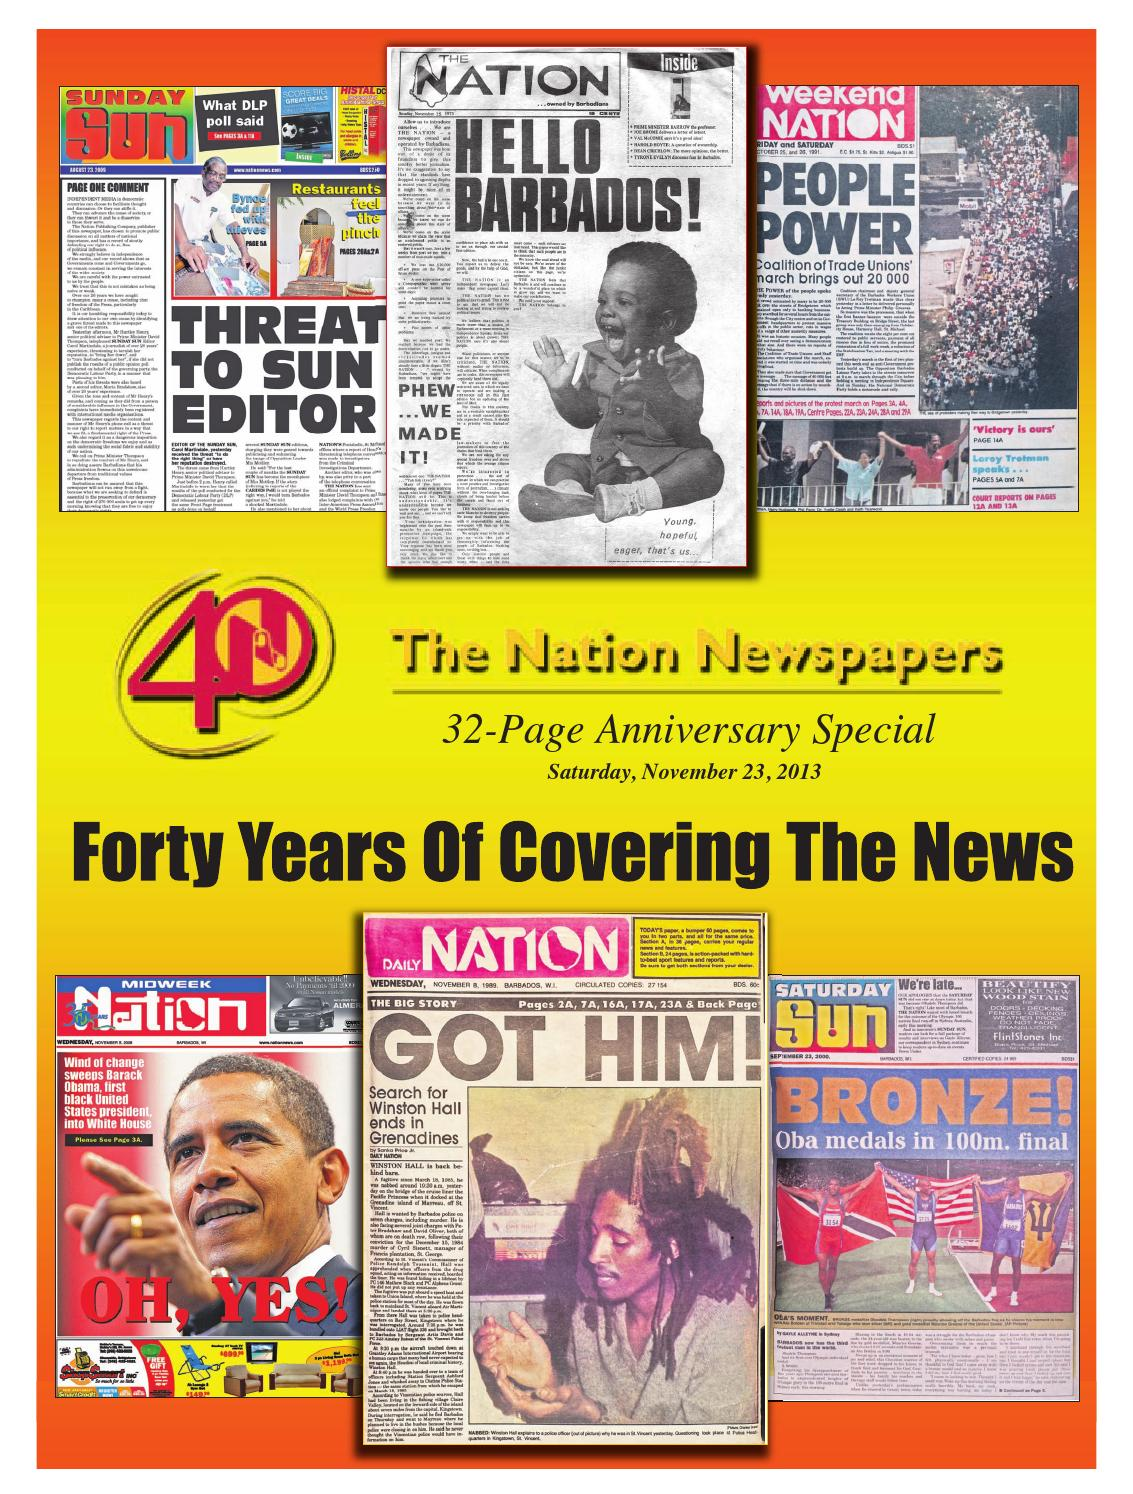 The Nation Newspapers' 40th Anniversary Supplement 1973-2013 by